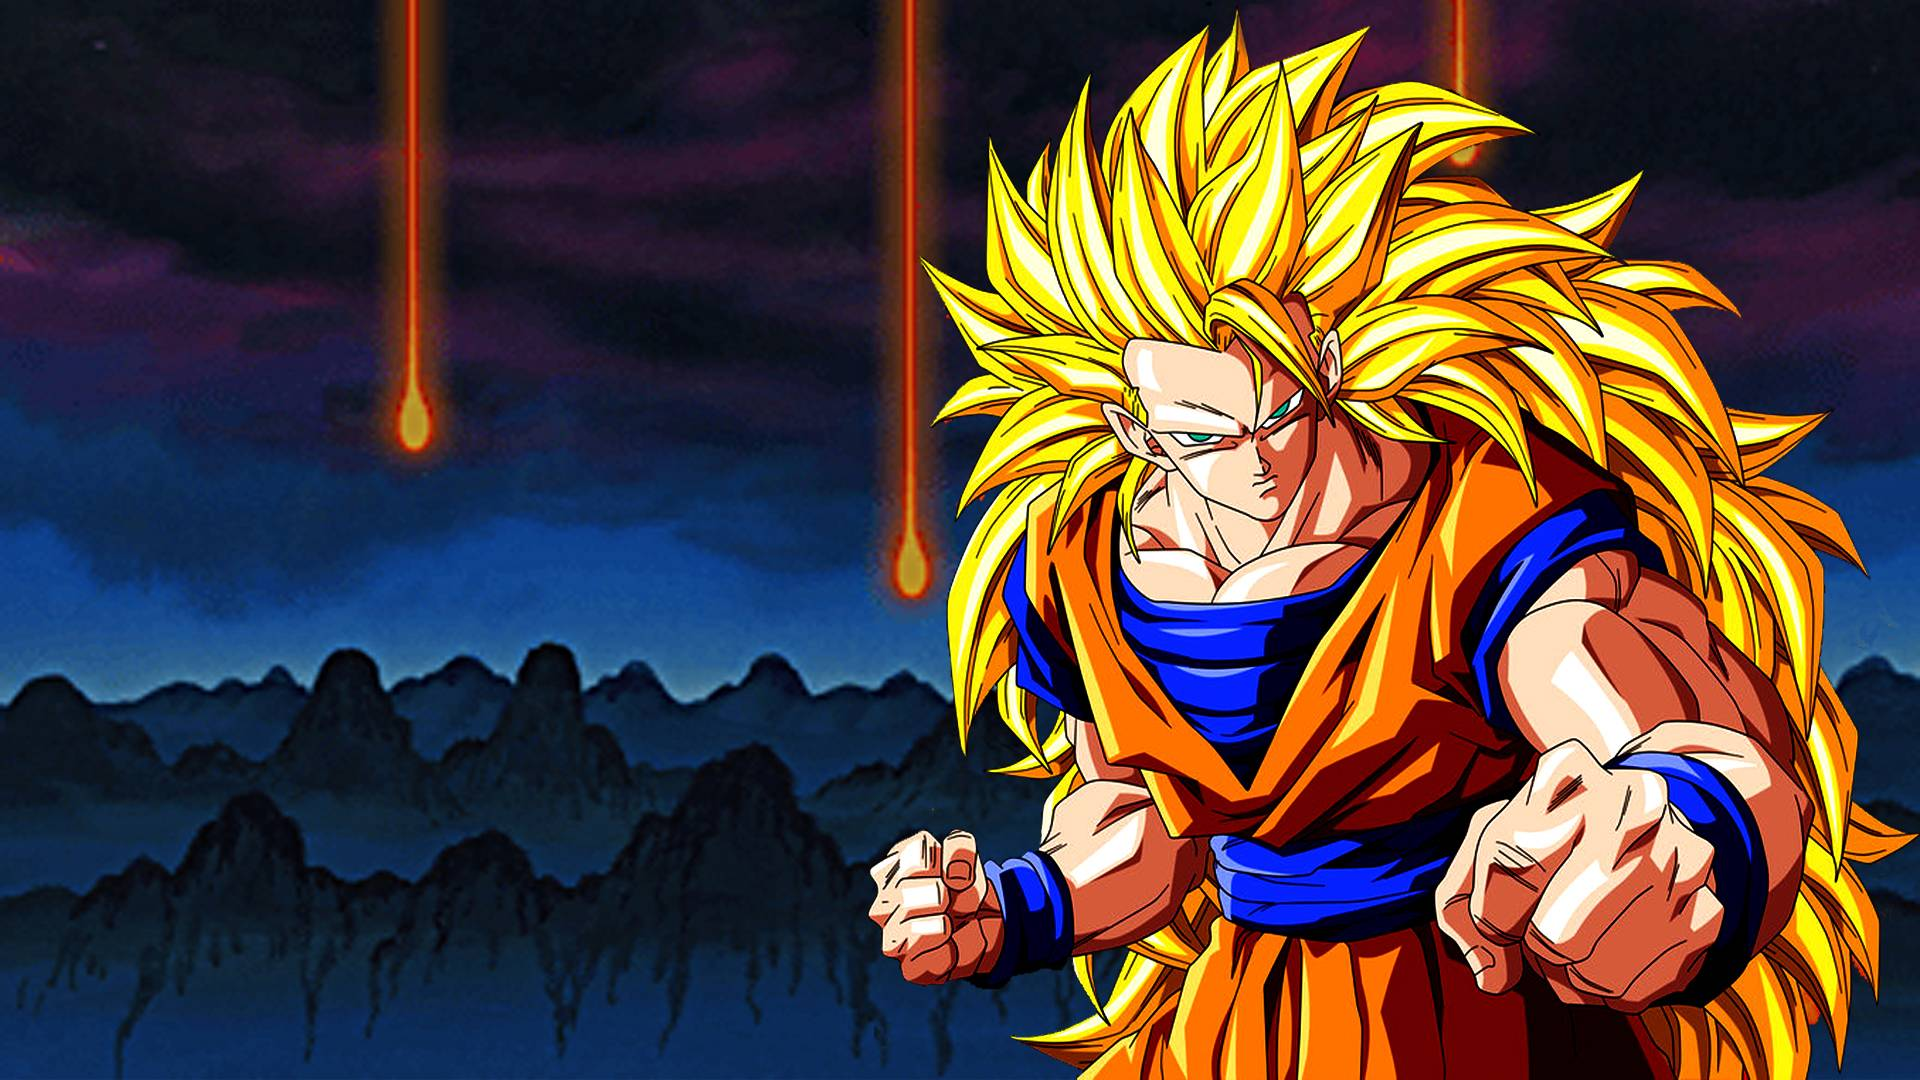 Dragon Ball Z Wallpapers Goku 1920x1080